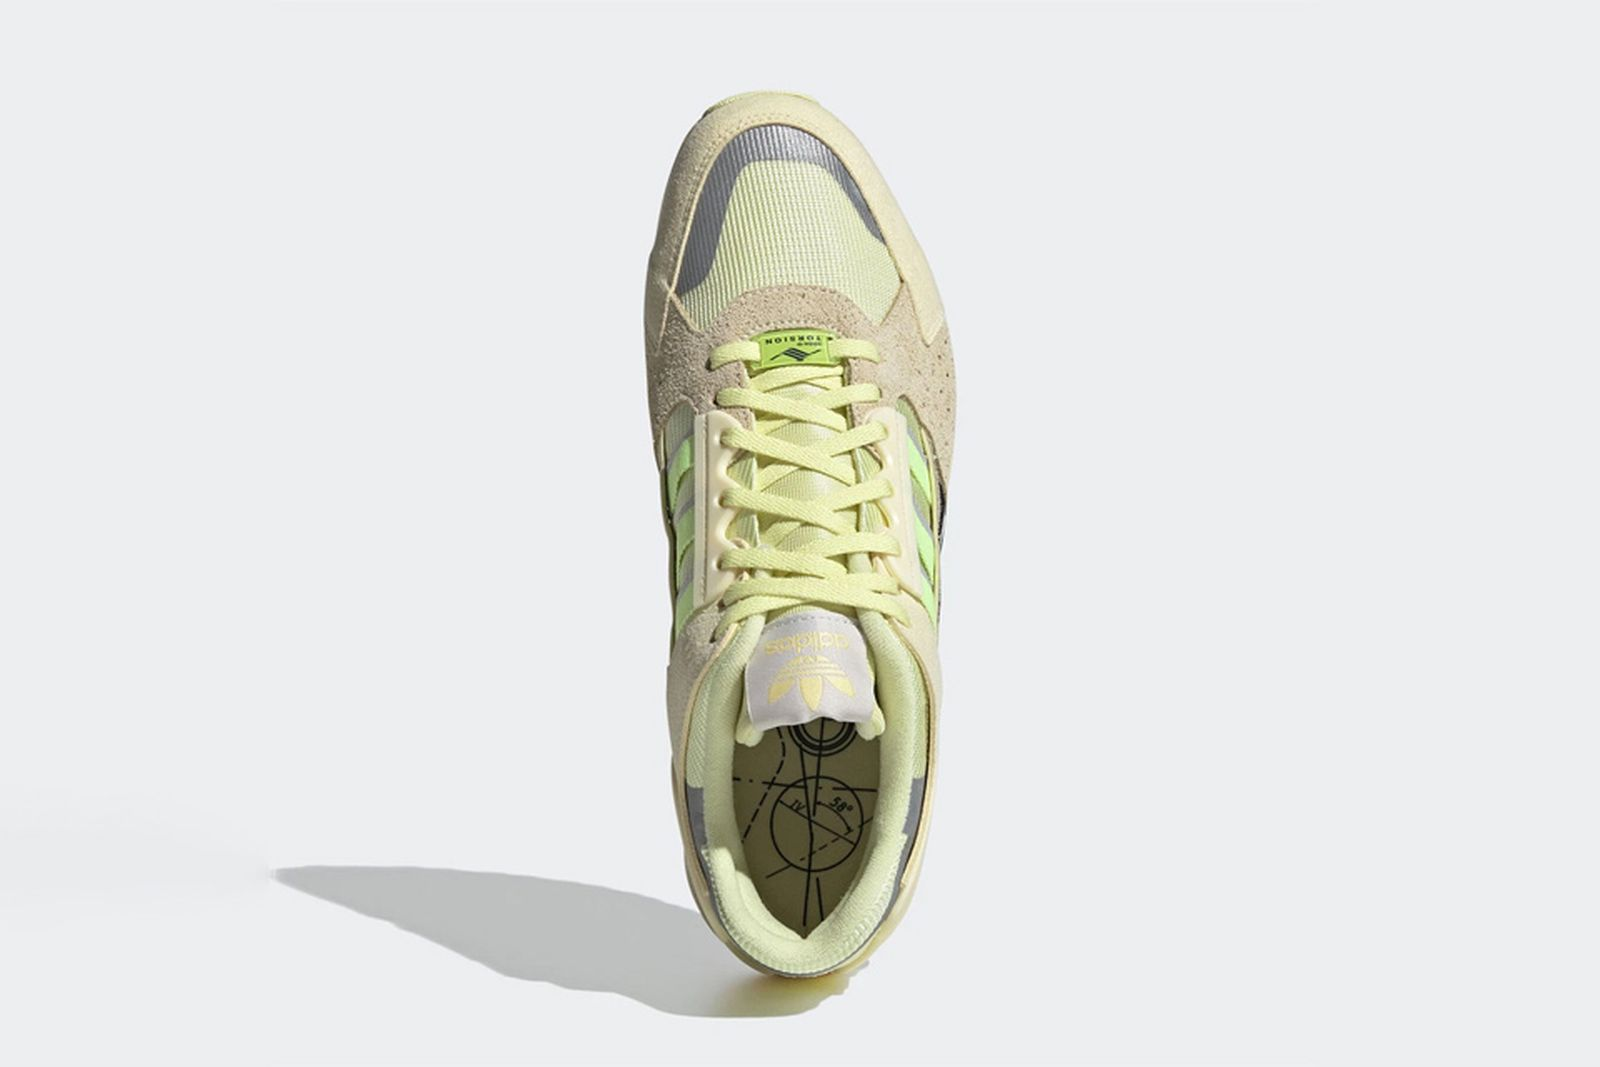 adidas-zx-10000-c-yellow-tint-release-date-price-05